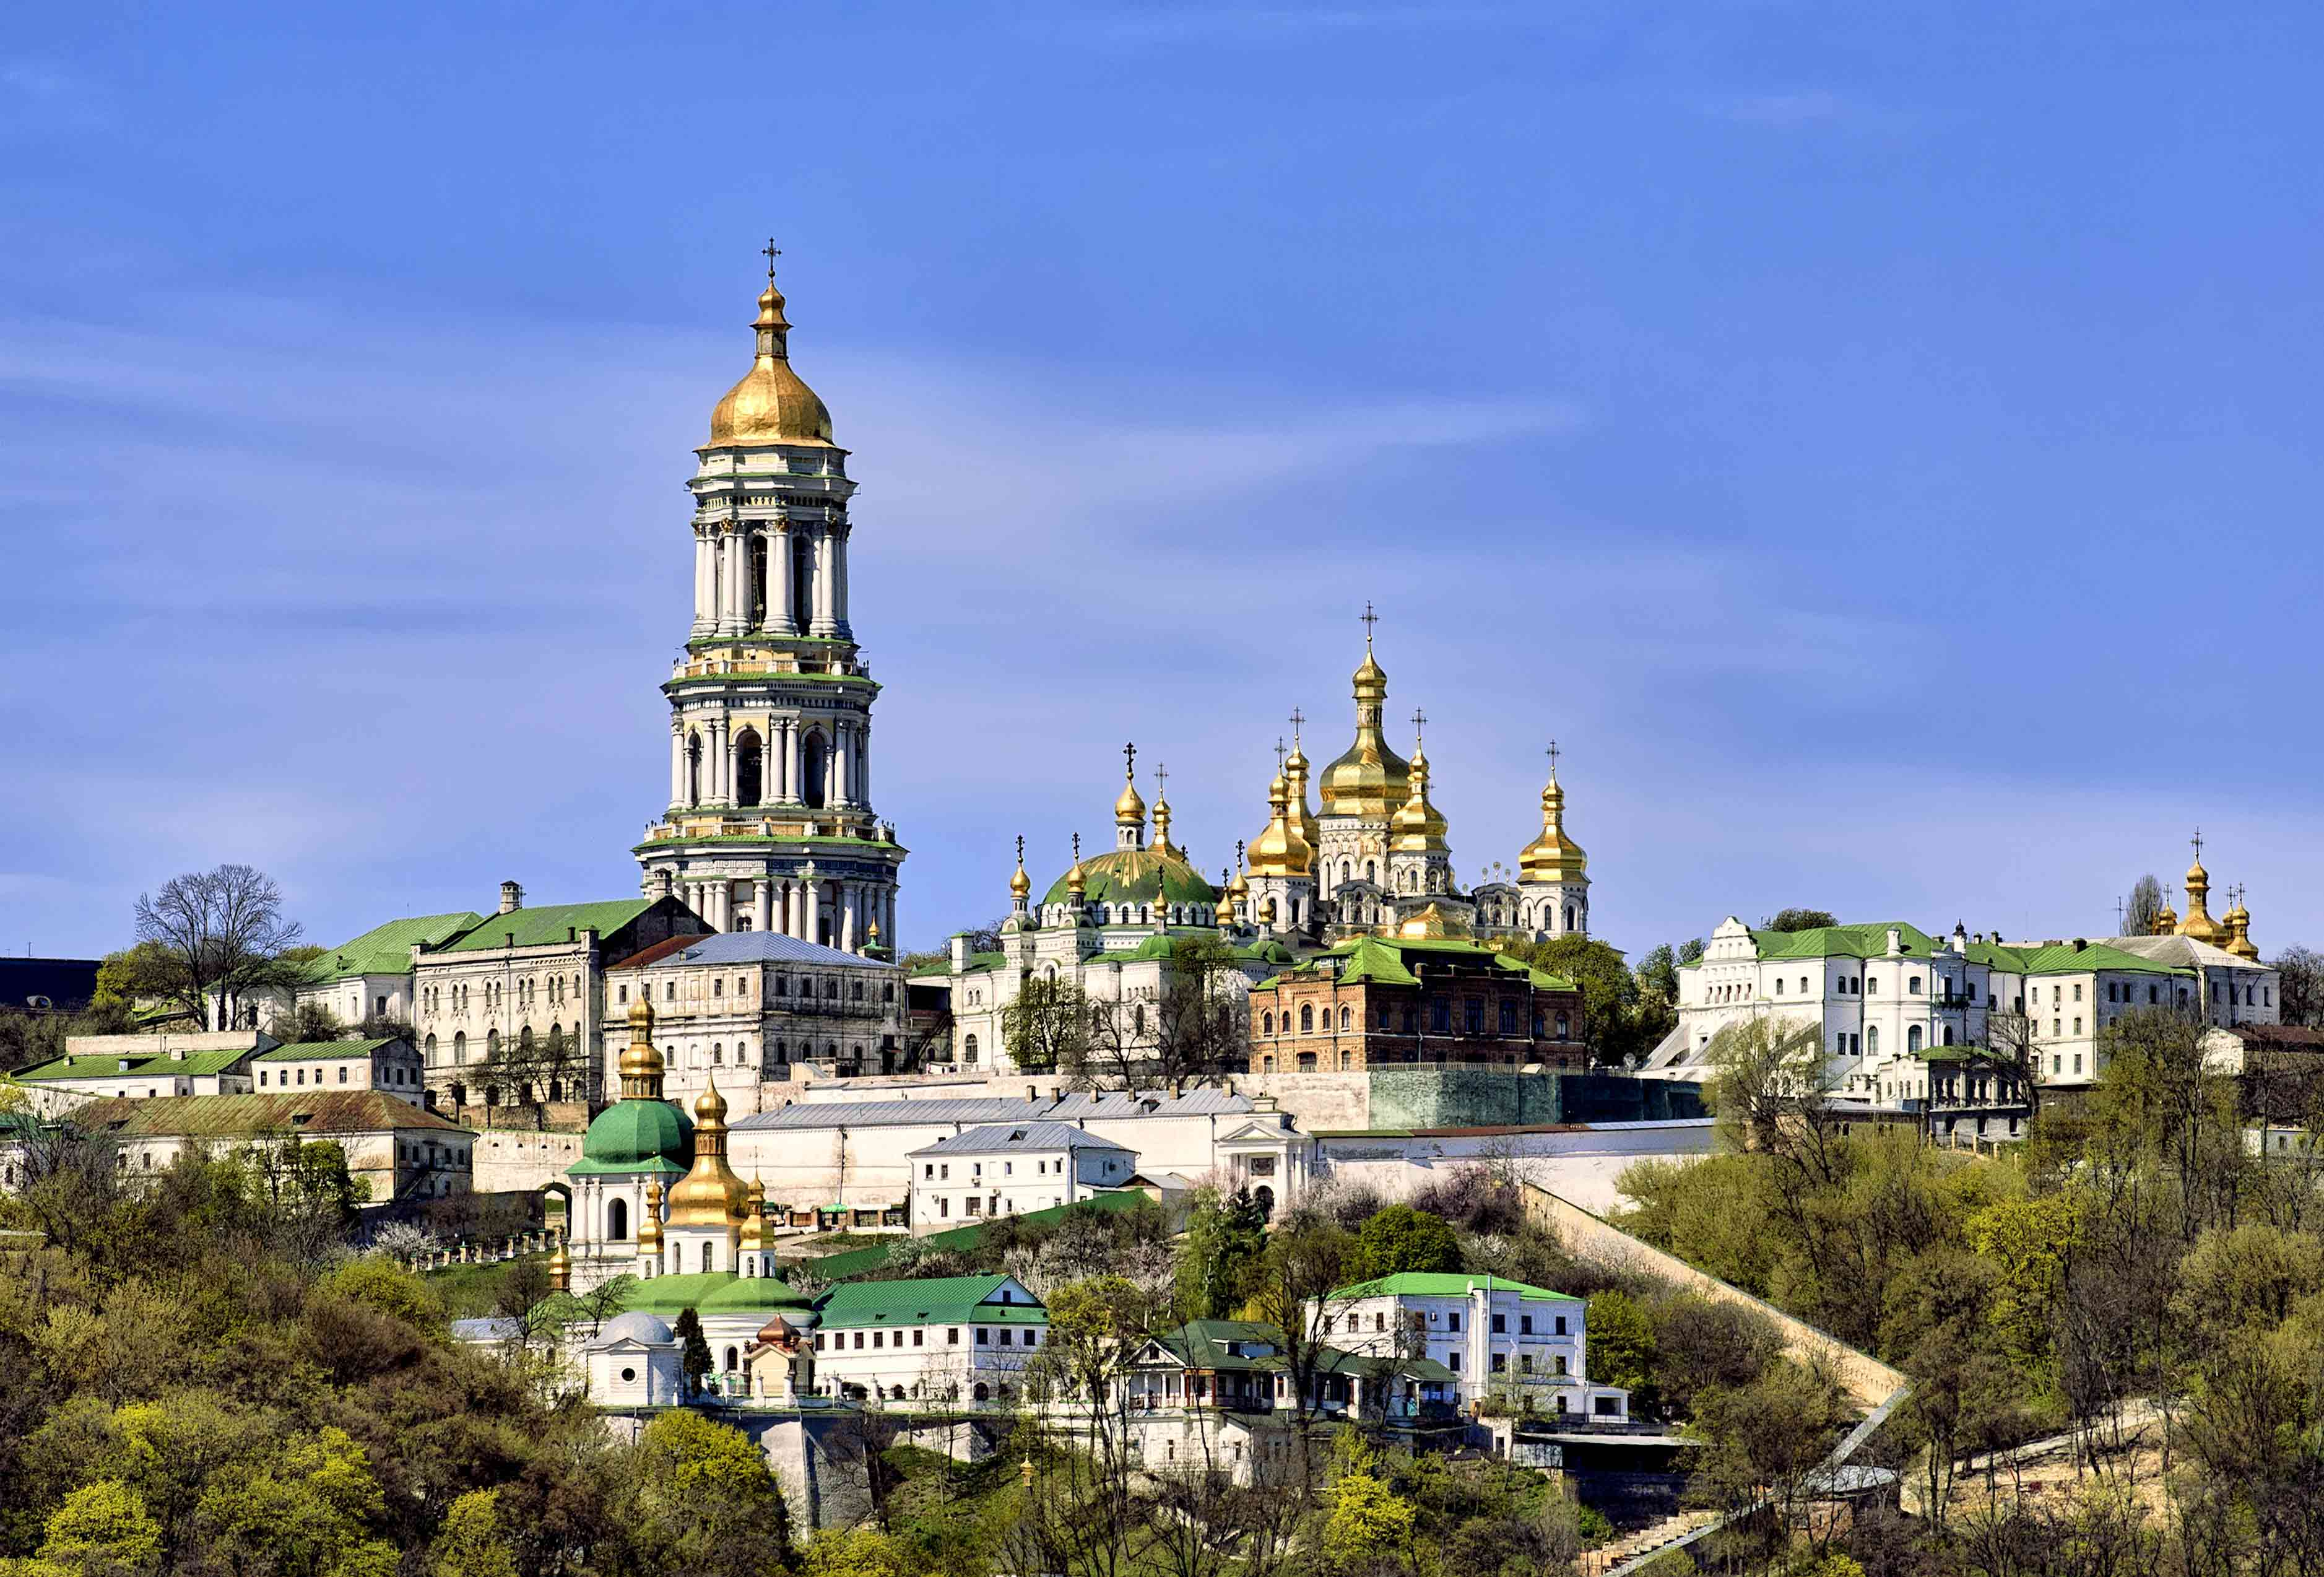 The Kiev-Pechersk Lavra